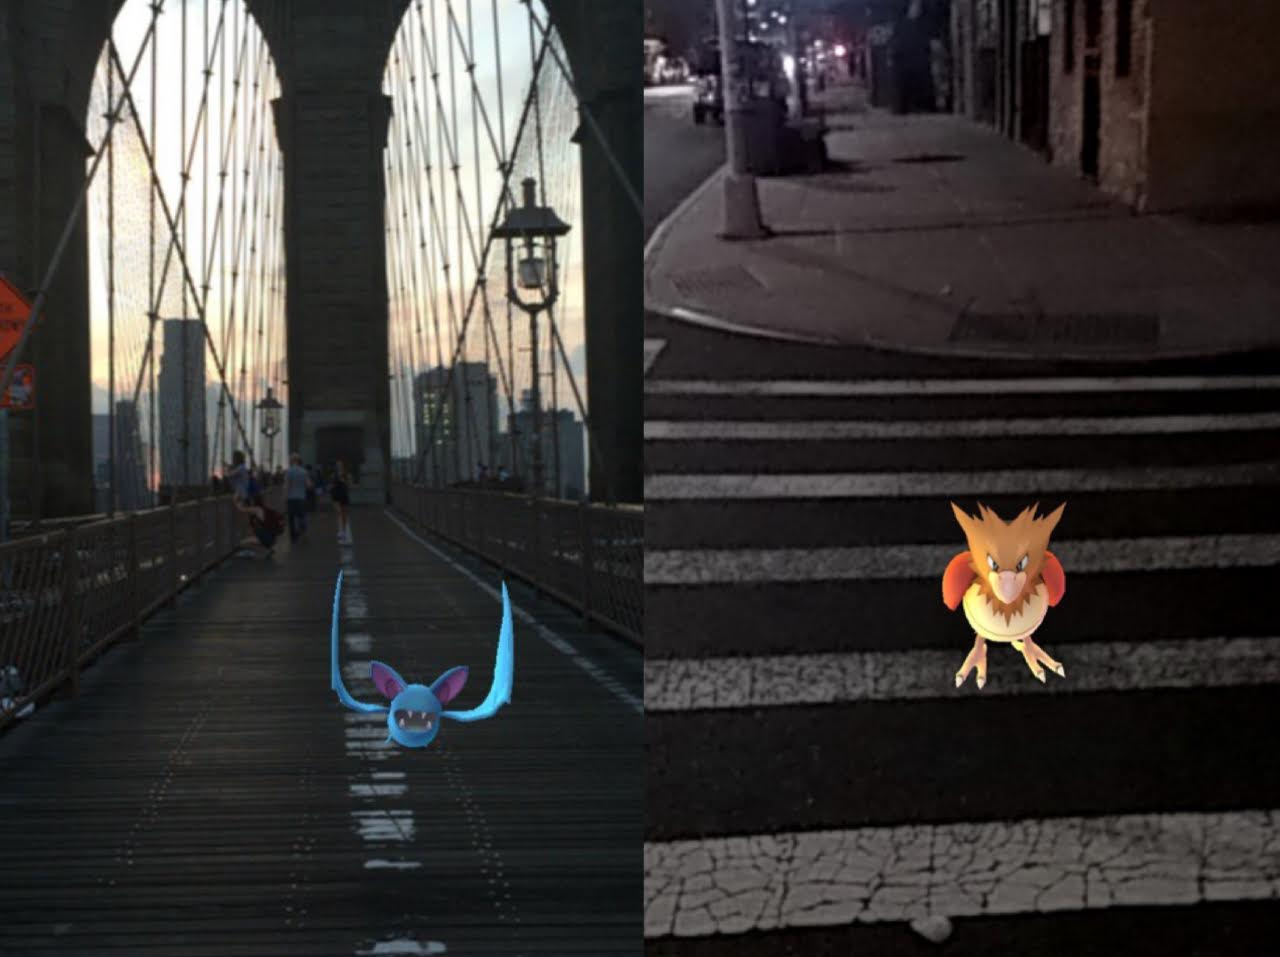 A Brooklynites Mini-Guide To 'Pokémon Go' According To A Few Neighborhood Players